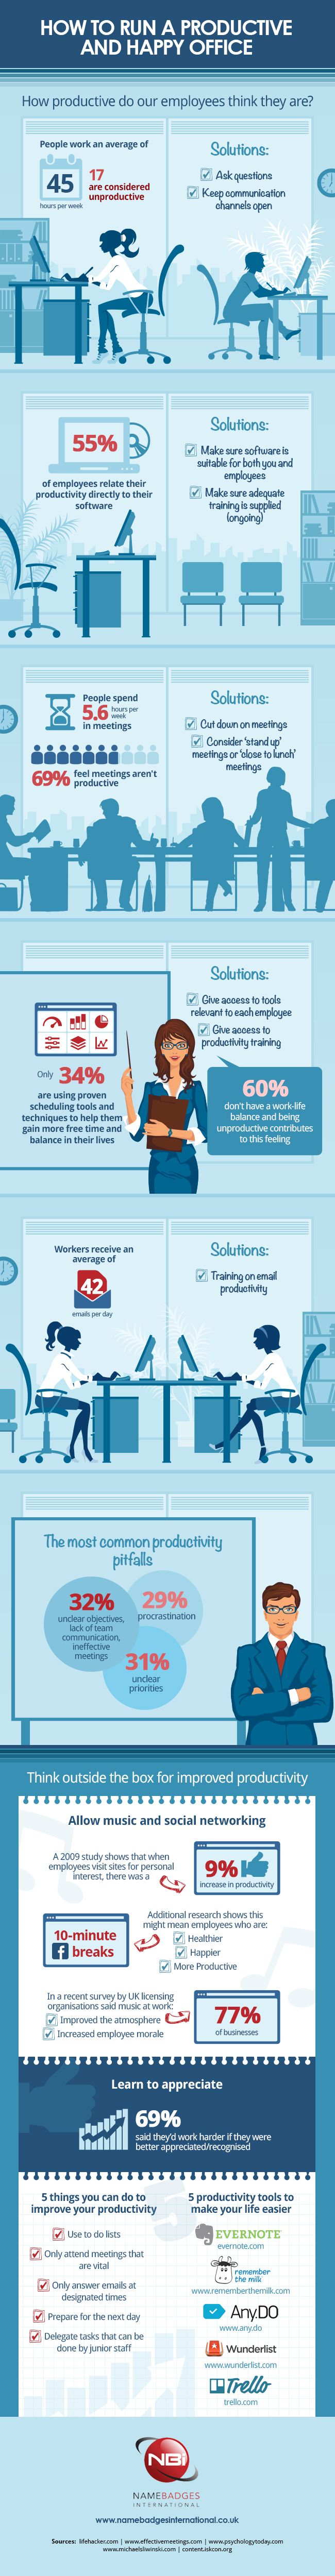 How To Run A Productive And Happy #Office #Infographic